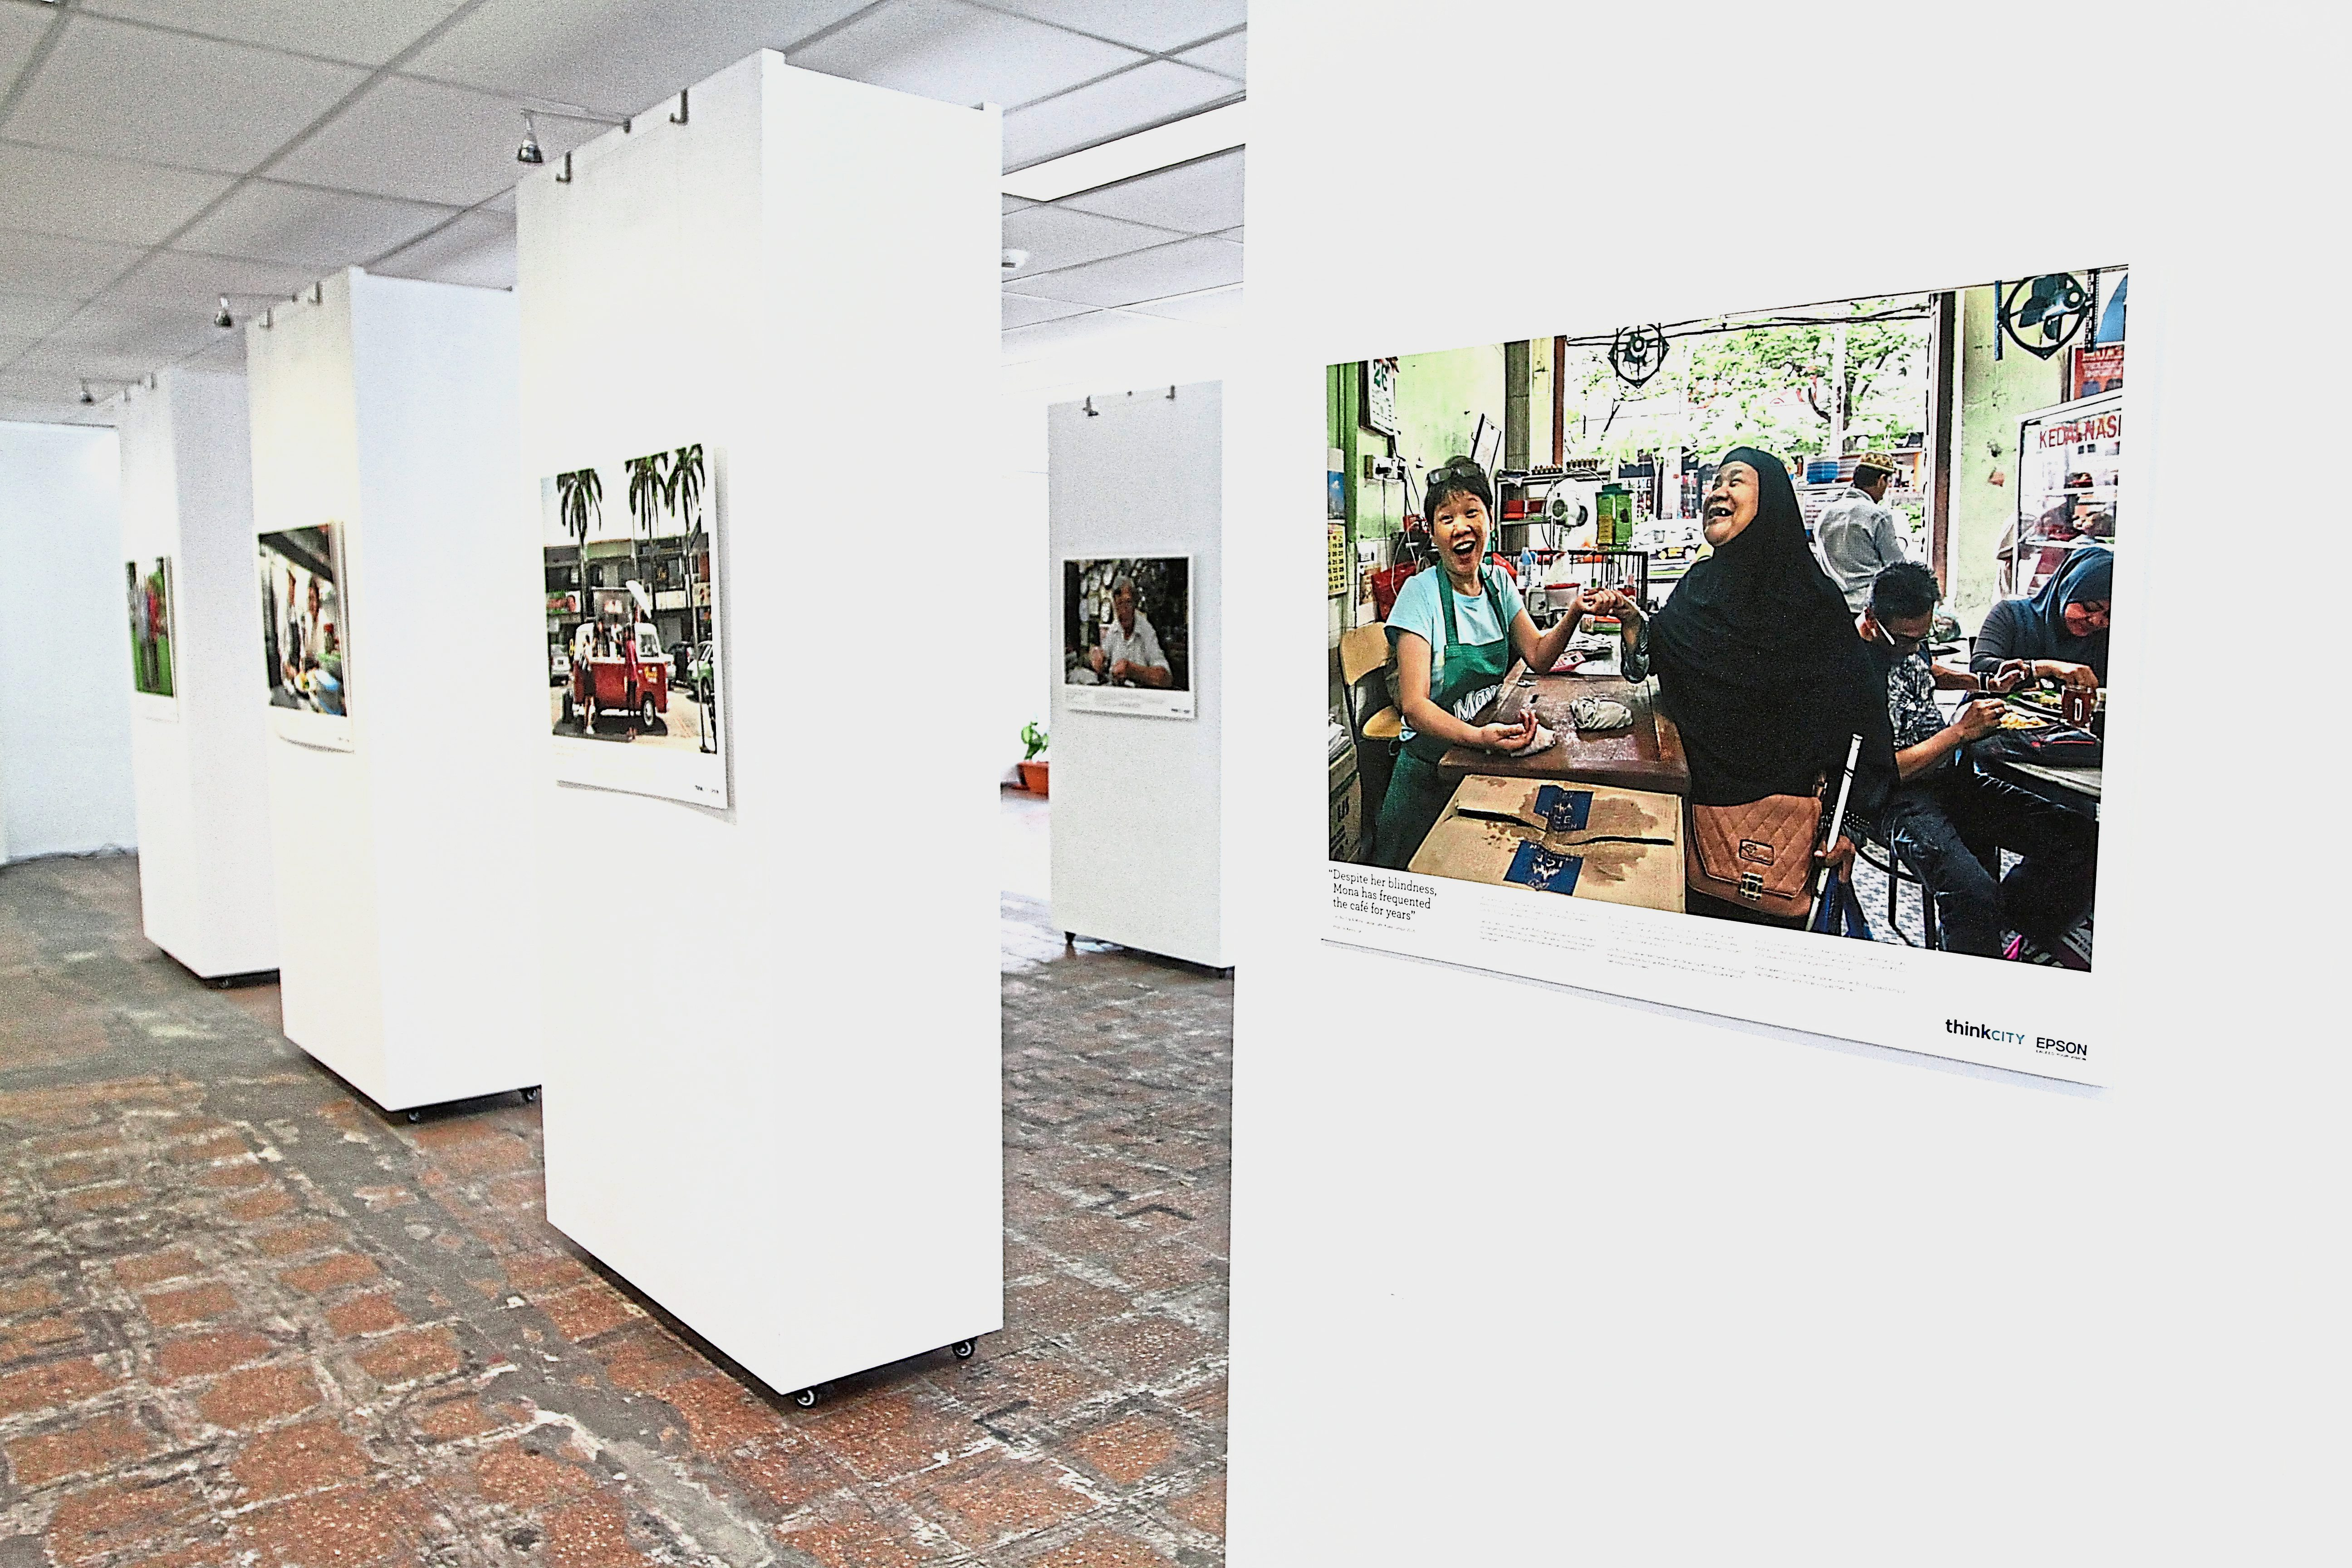 The Born in Malaysia photo exhibition by Kenny Loh depicts the hidden stories of Kuala Lumpur. It will be held until Oct 21 at 2HK's second floor.